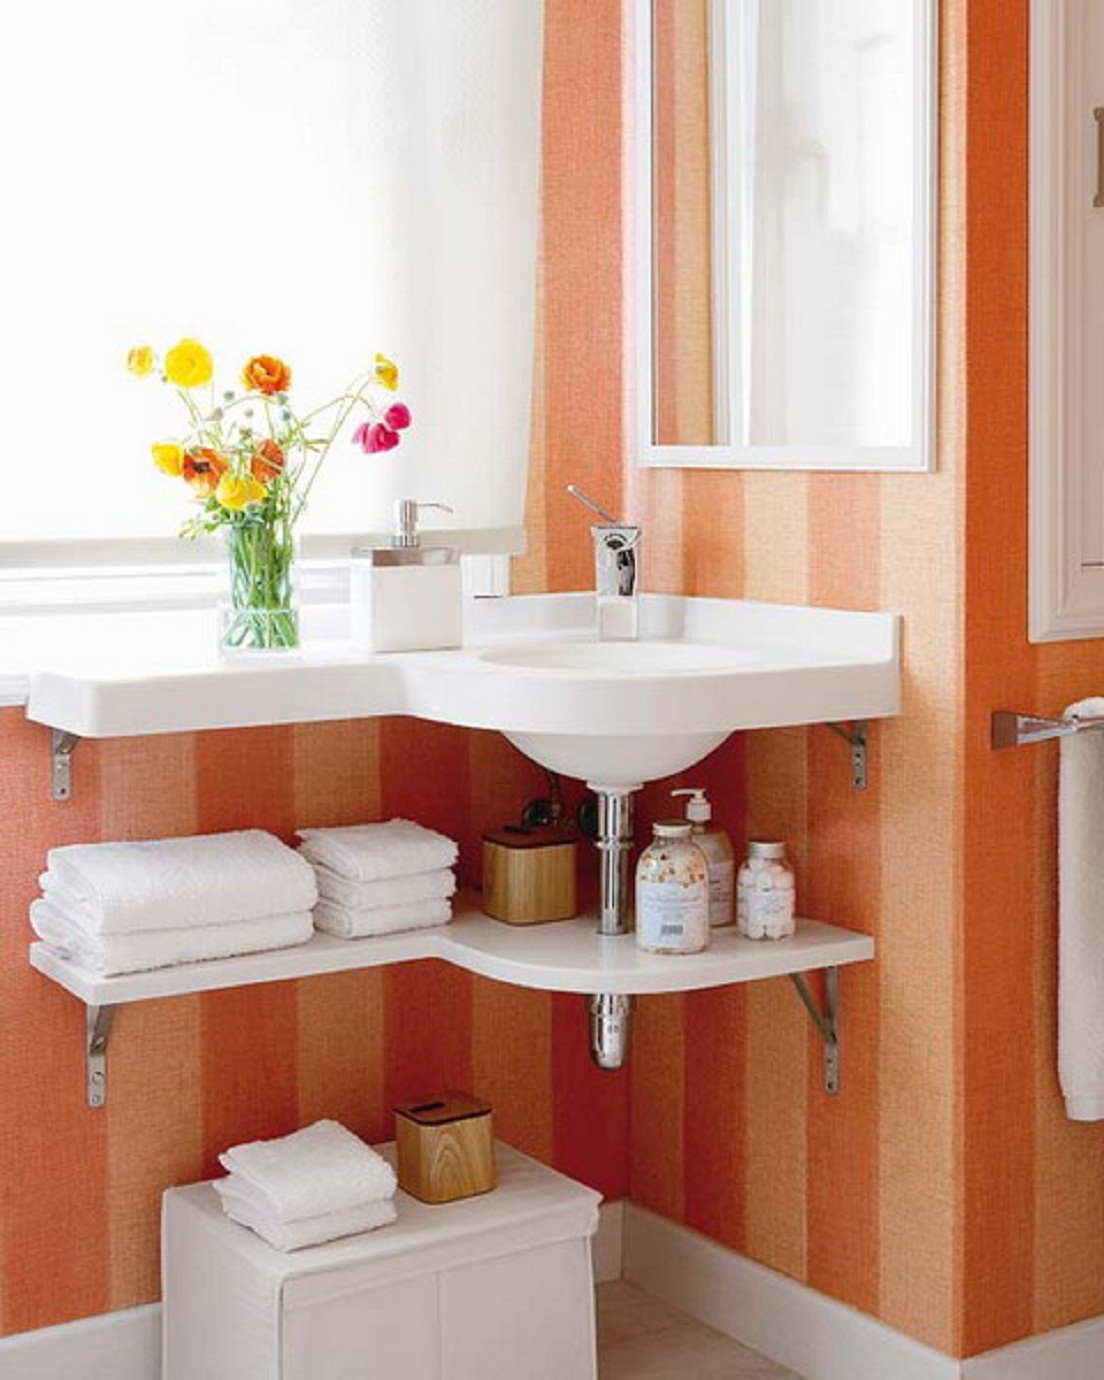 Cool-Practical-Bathroom-Storage-Ideas